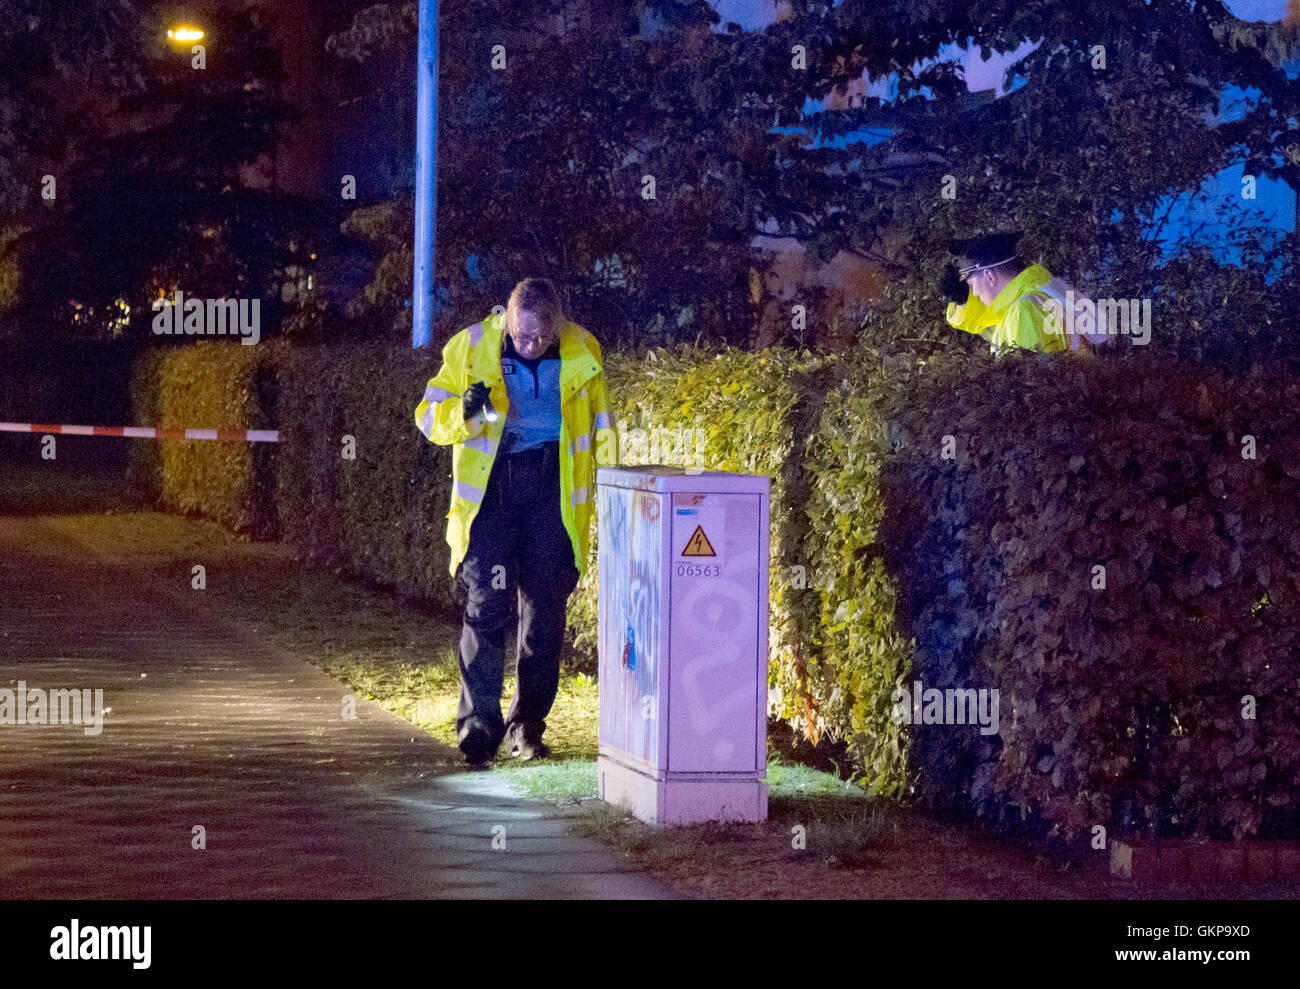 Berlin-Hellersdorf, Germany. 20th Aug, 2016. Two police officers search for clues at a crime scene in Berlin-Hellersdorf, - Stock Image